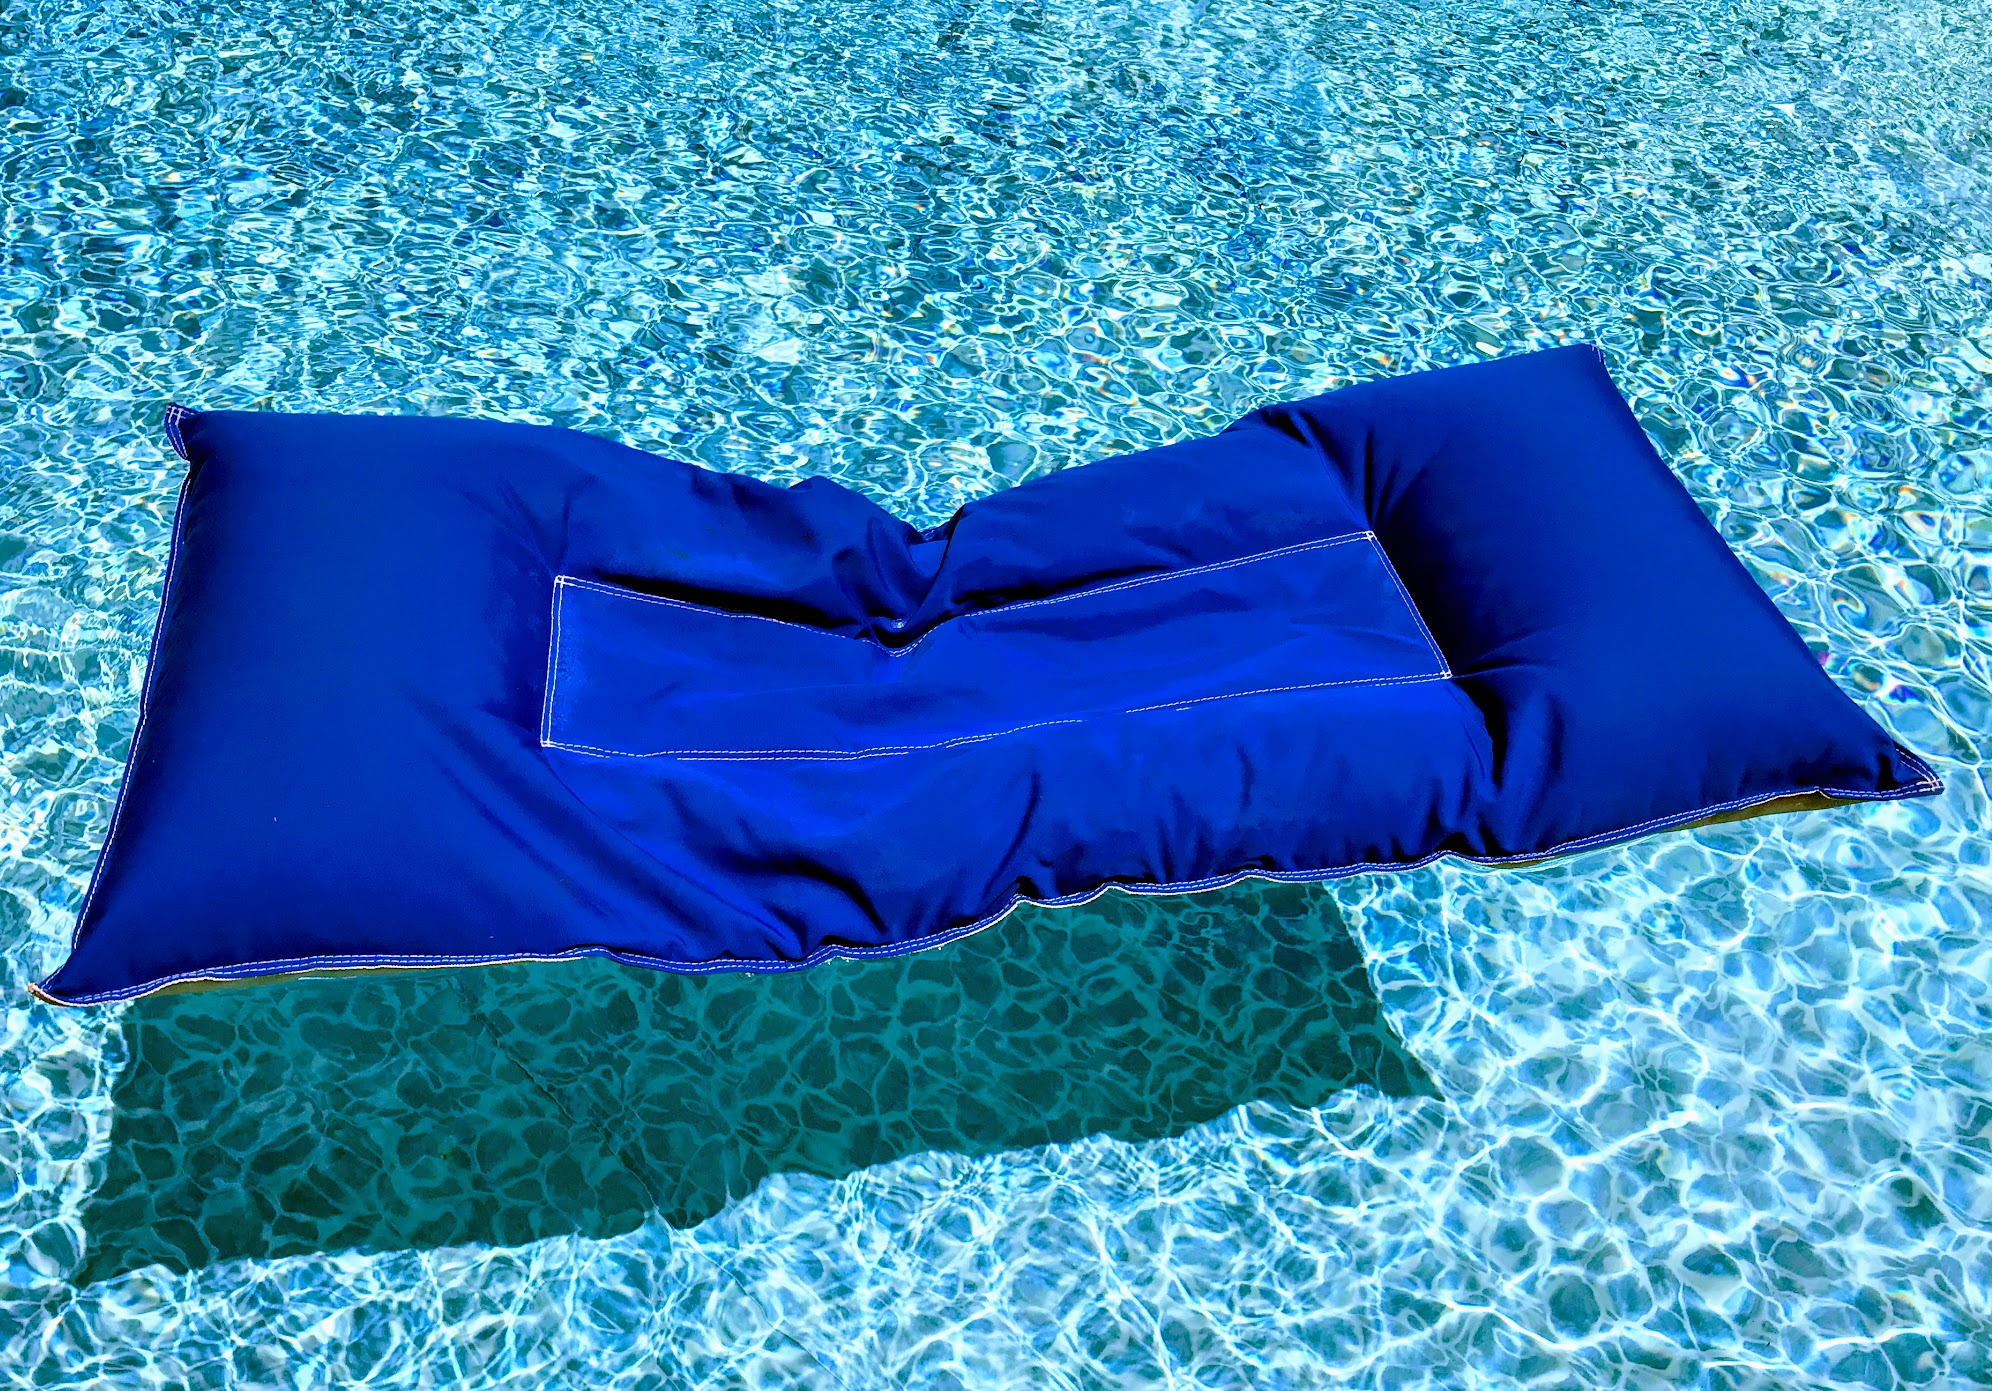 unsinkable swimming pool floats